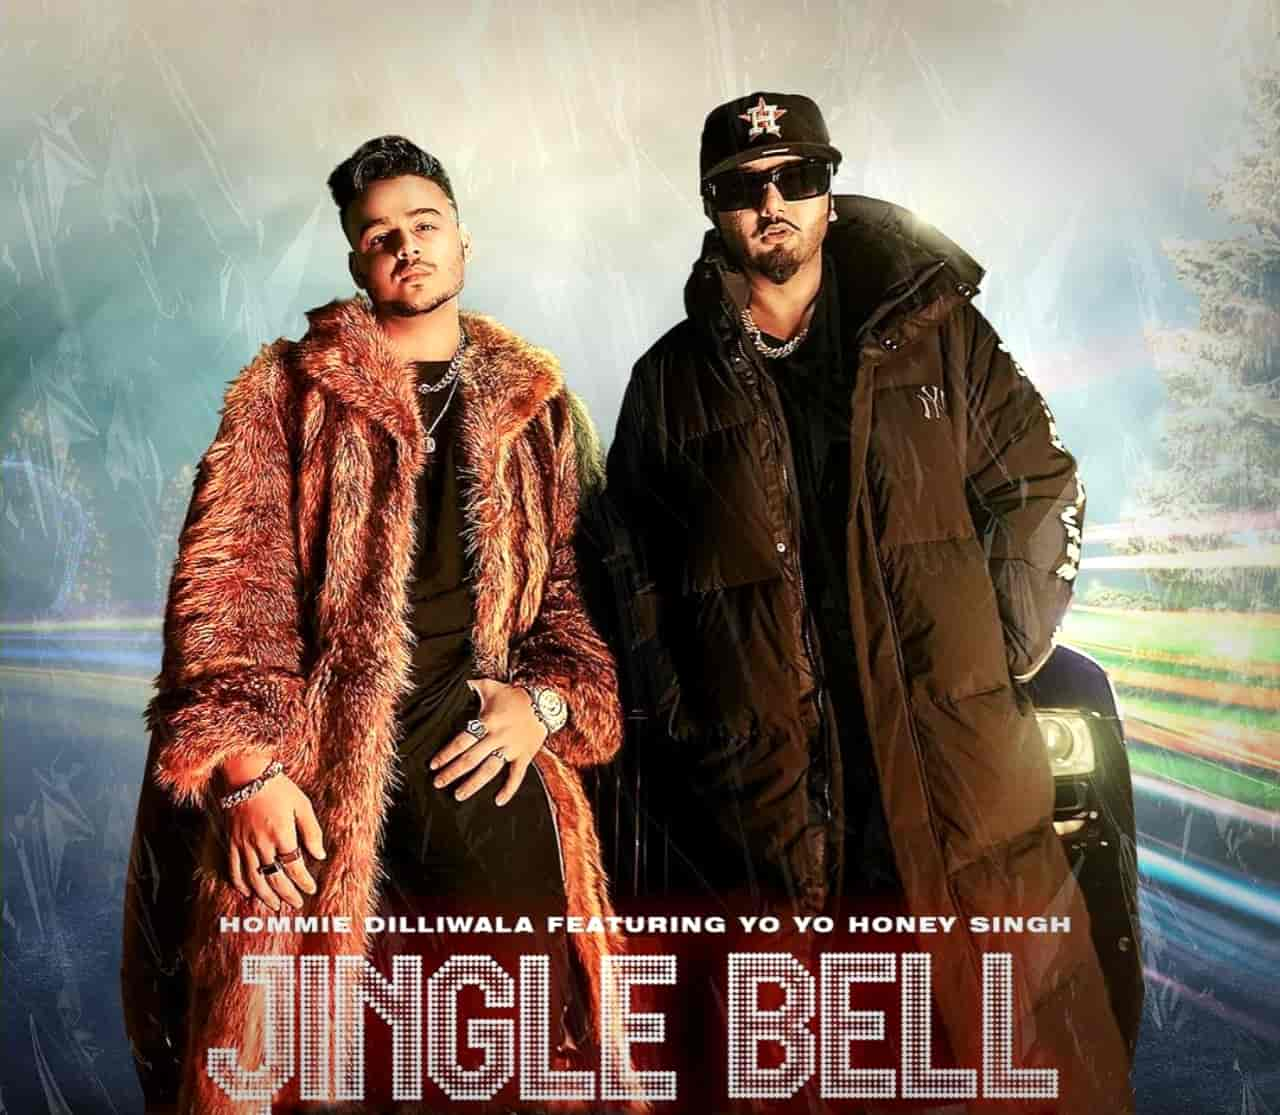 Jingle Bell Song Image Features Yo Yo Honey Singh and Hommie Dilliwala